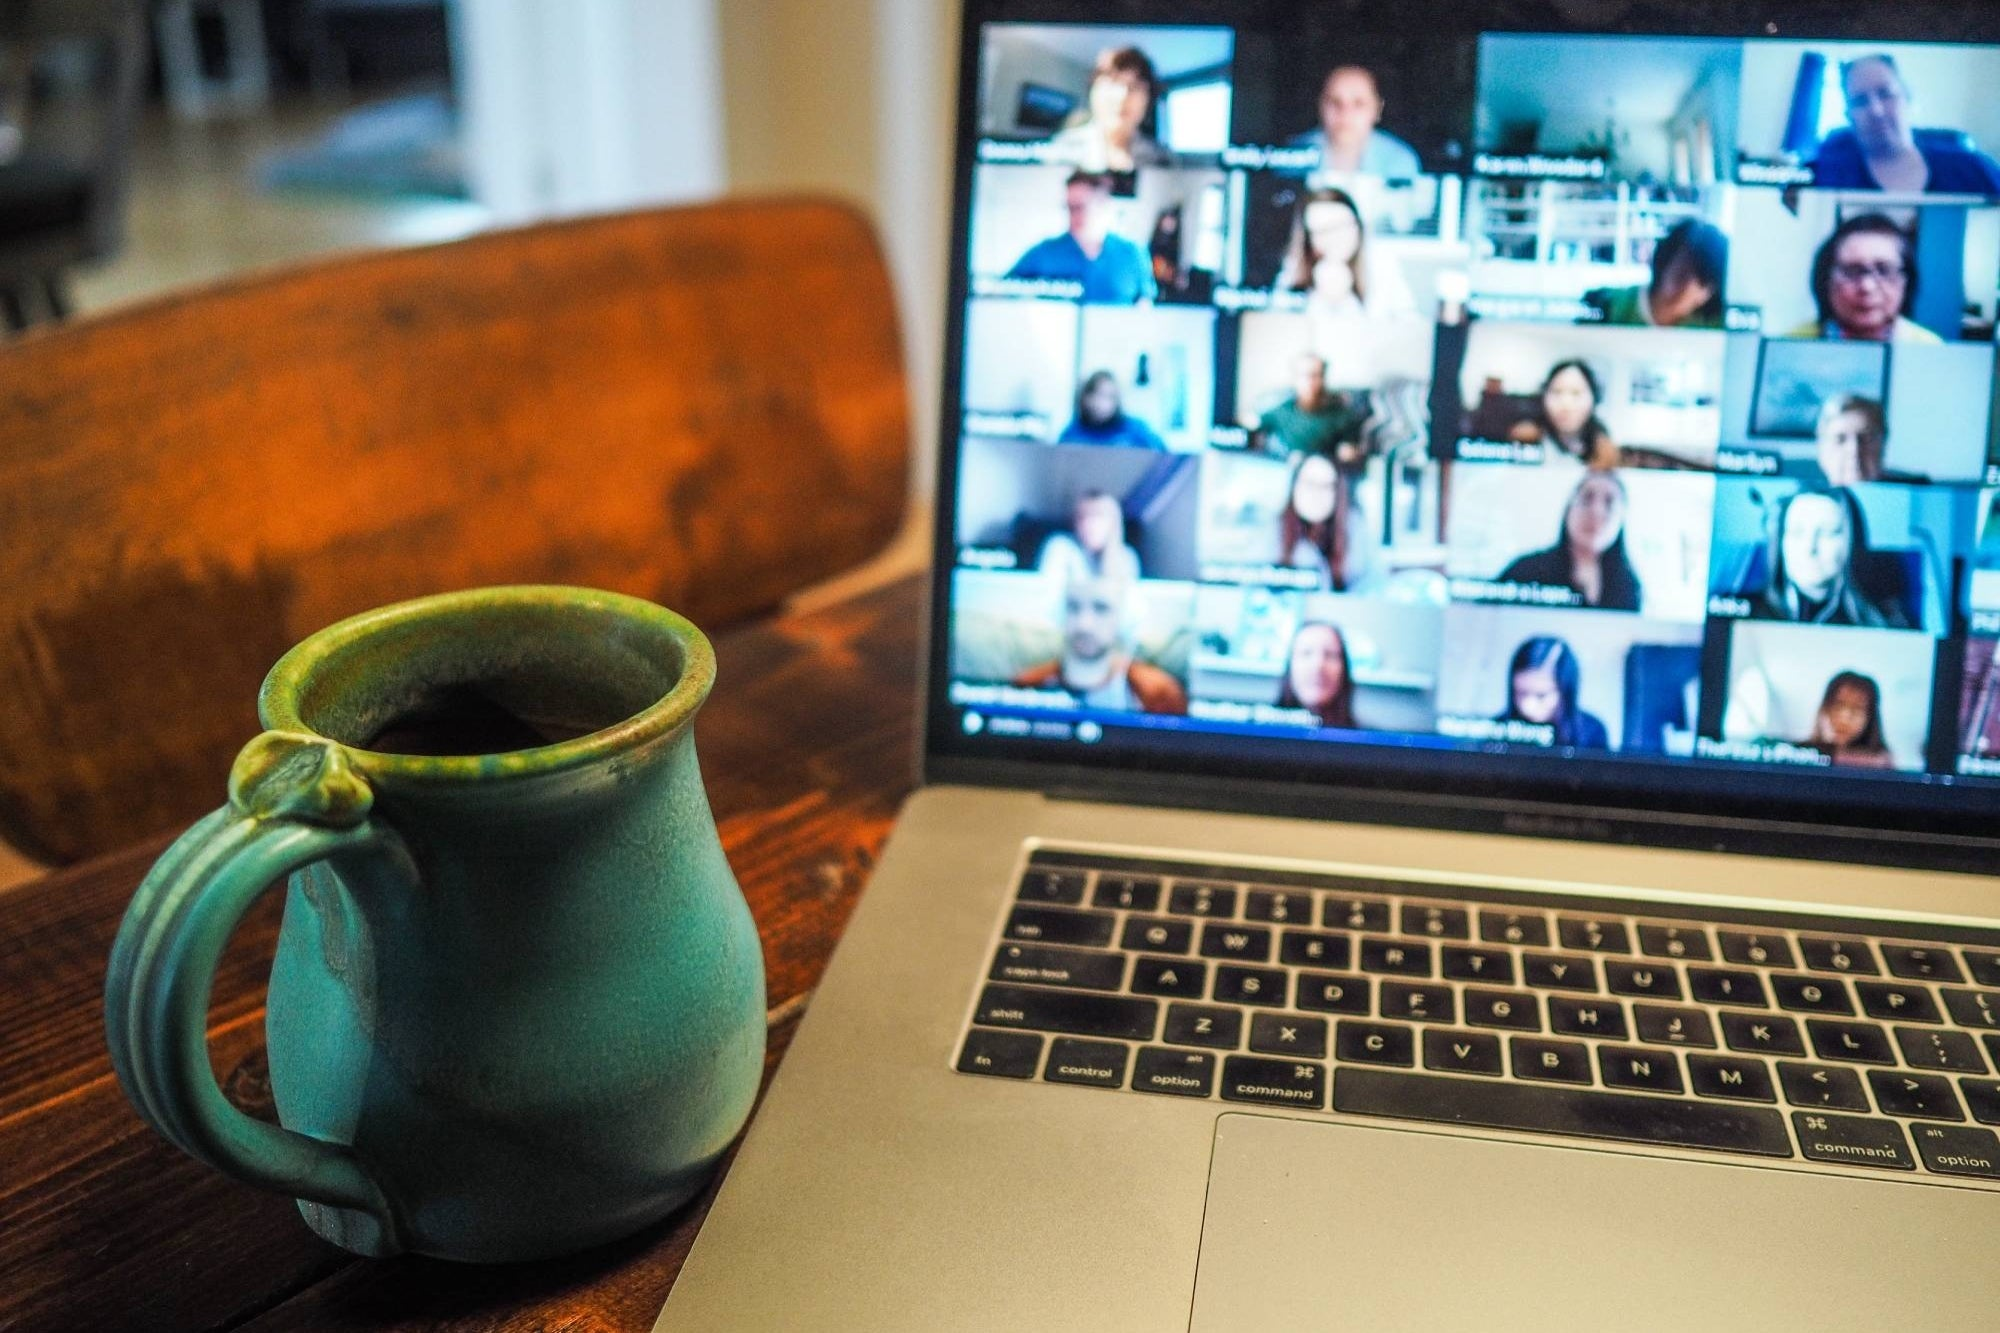 Why is it good for companies to stop abusing video calls?